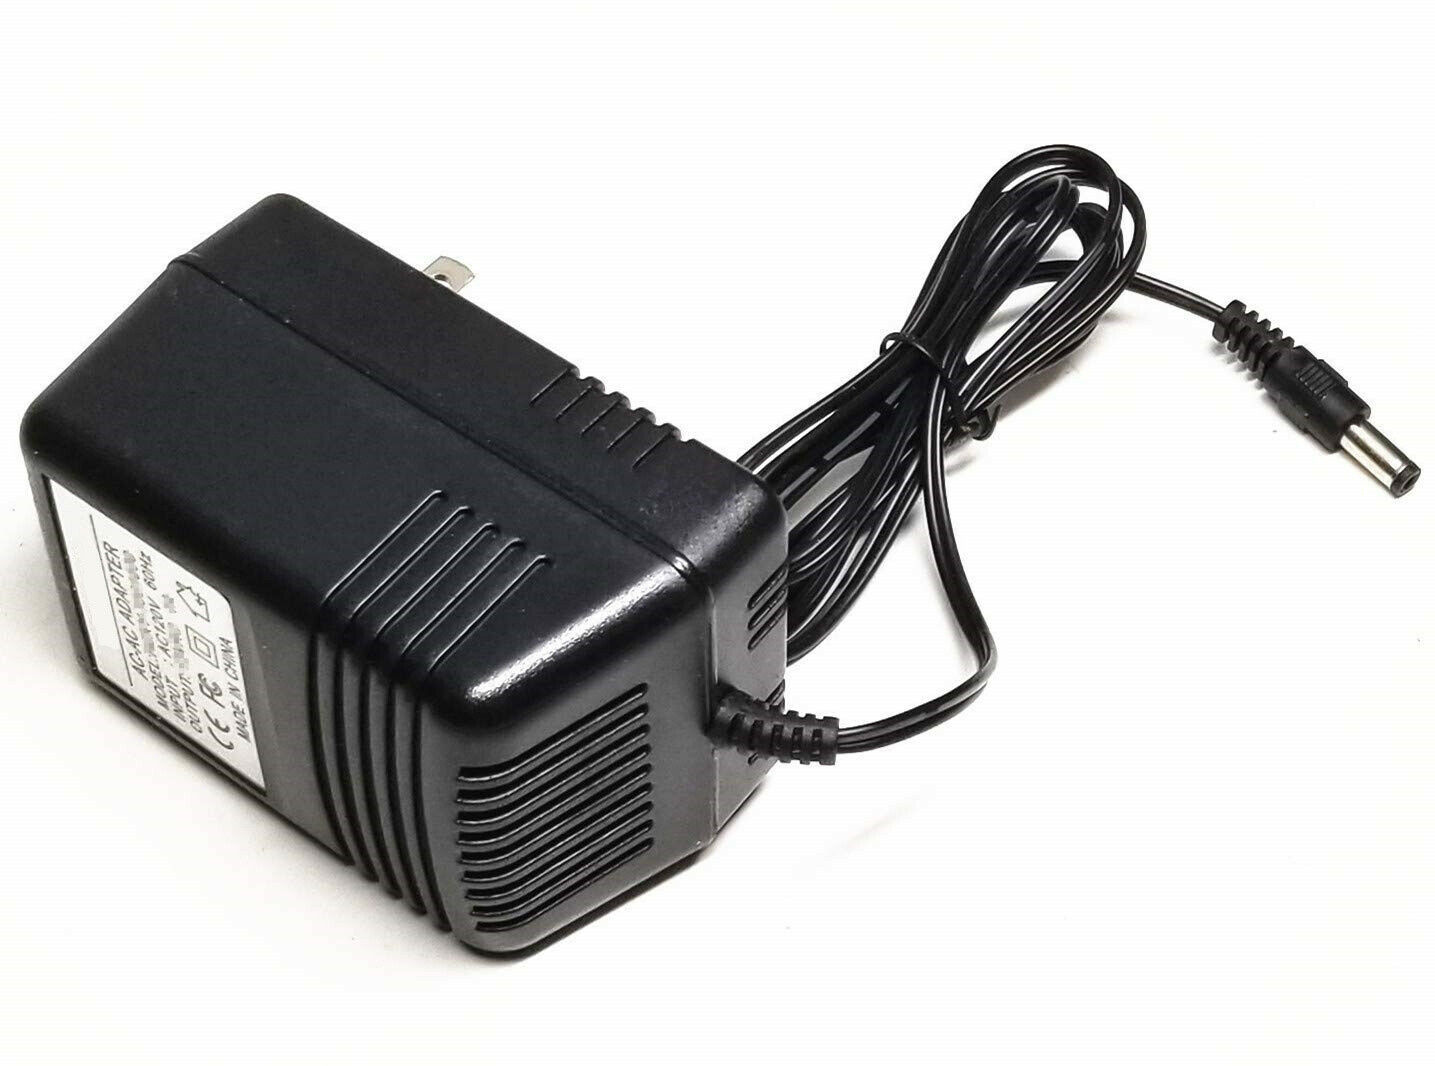 9V AC Adapter for Line 6 98-030-0042-05 PX2 US POD XT POD X3 Series Power Supply